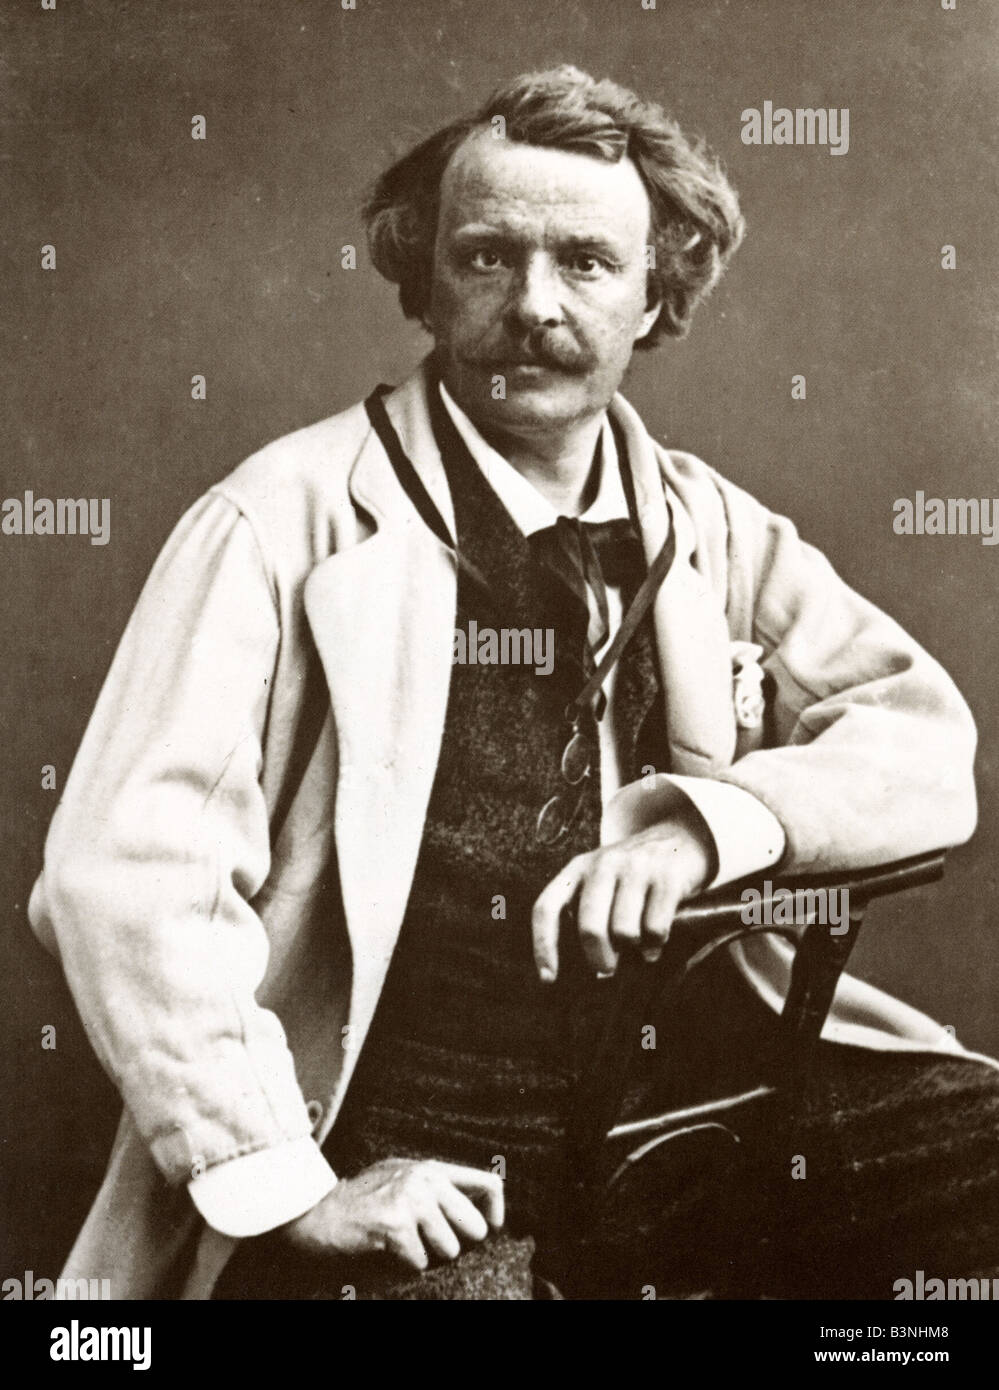 Image result for 1910, Nadar, French photographer